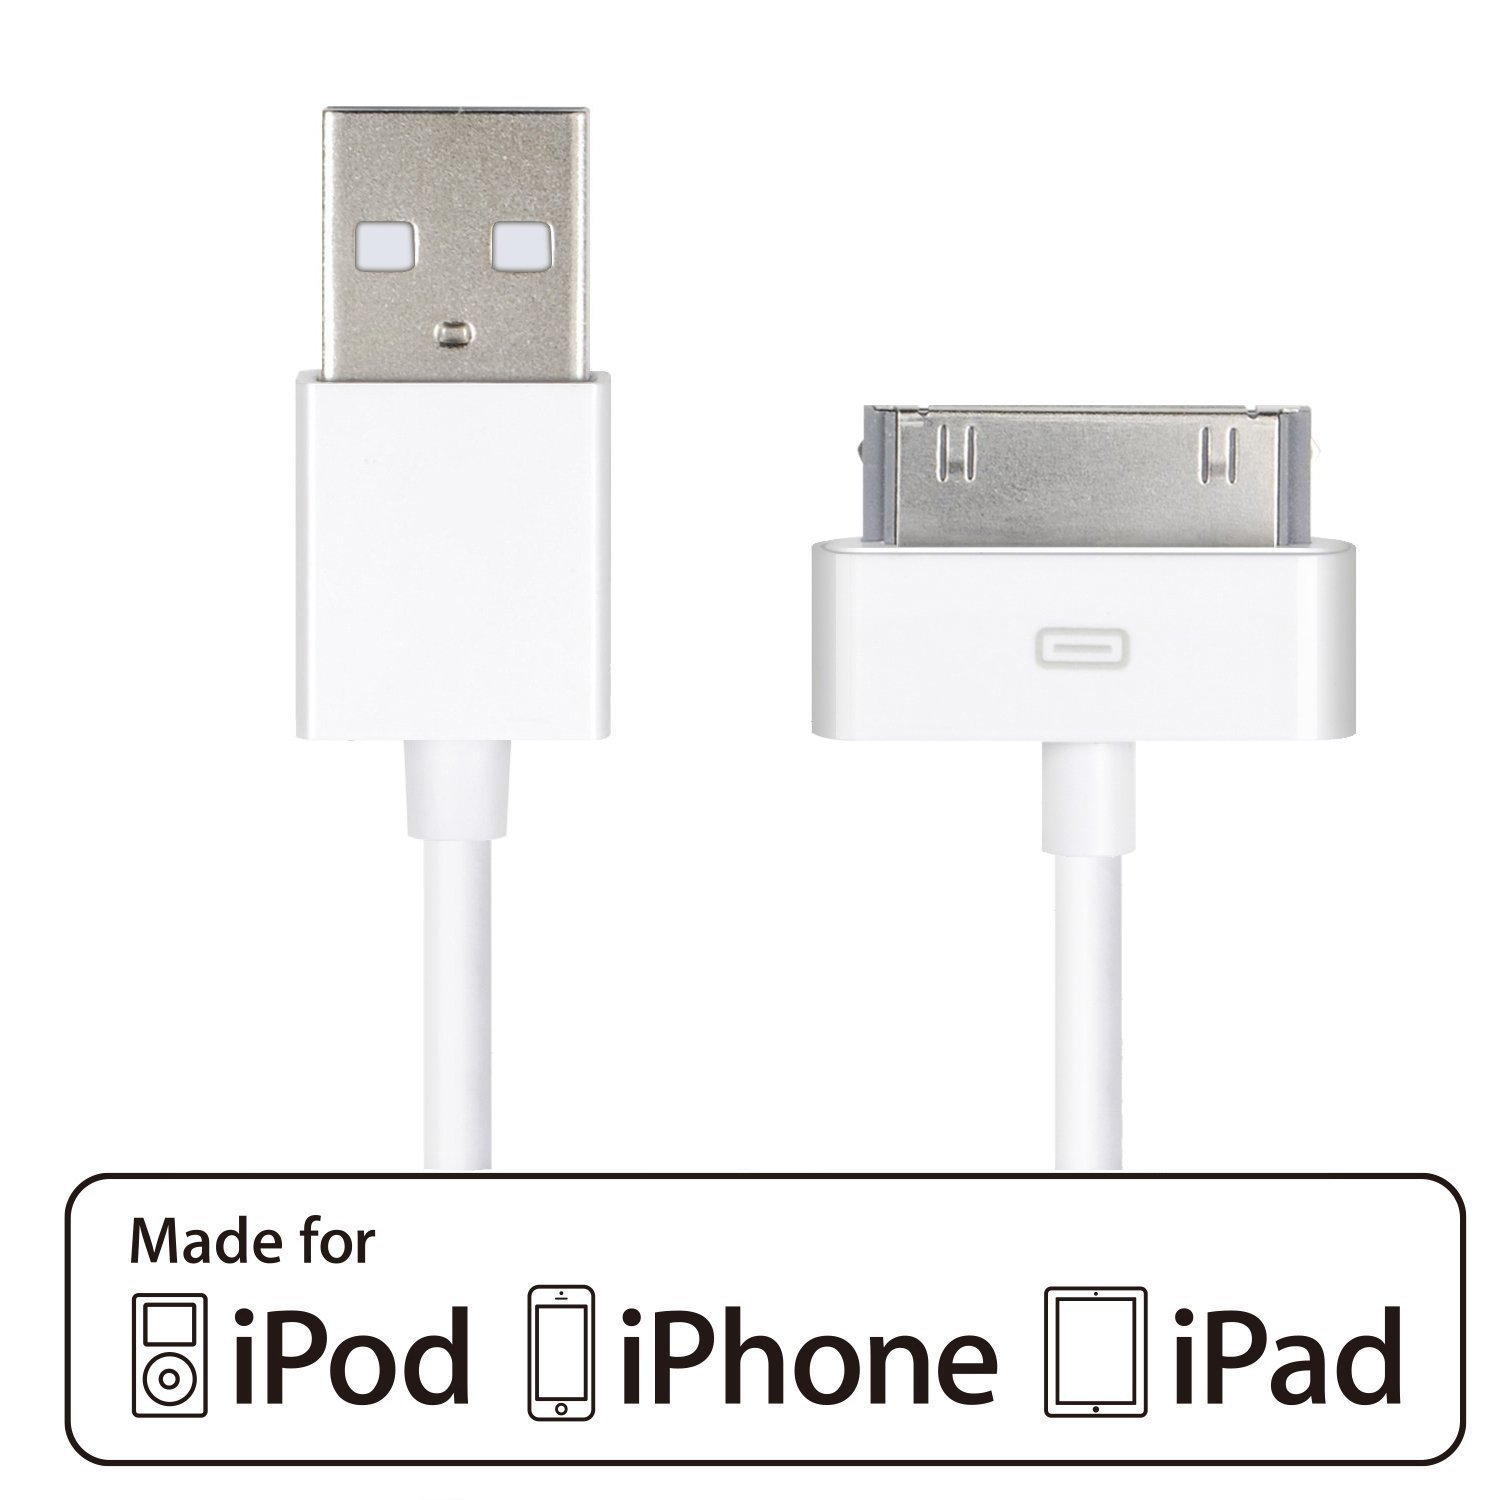 HQTech 1-Pack USB Sync and Charging Cable Compatible for iPhone 4/4s, iPhone 3G/3GS, iPad 1/2/3, iPod - 3.2 Feet 1 Meter - 6240 HQTech Corp